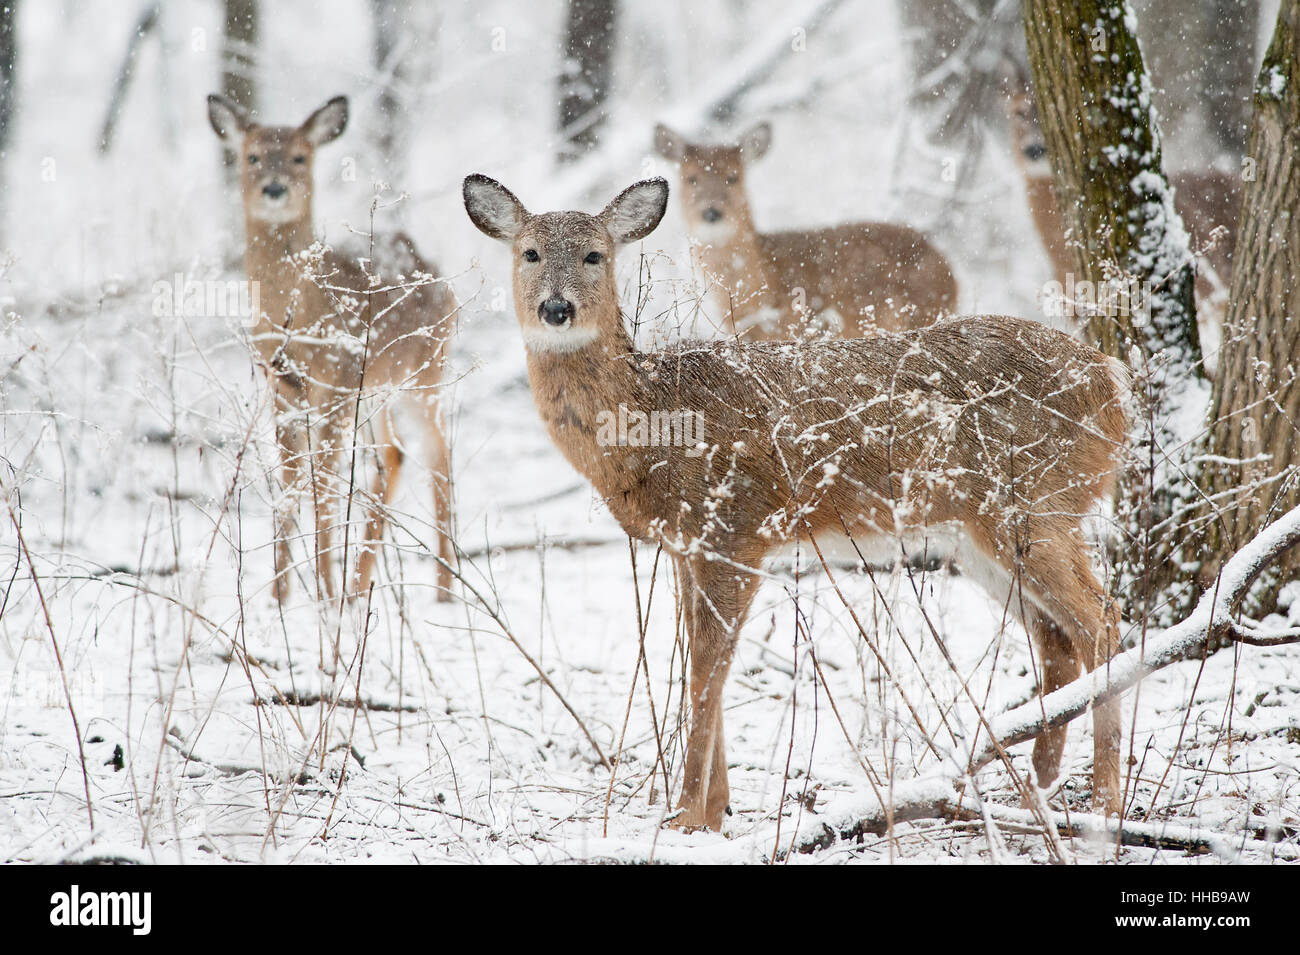 A group of Whitetail Deer stand in an early spring snow in the forest. - Stock Image